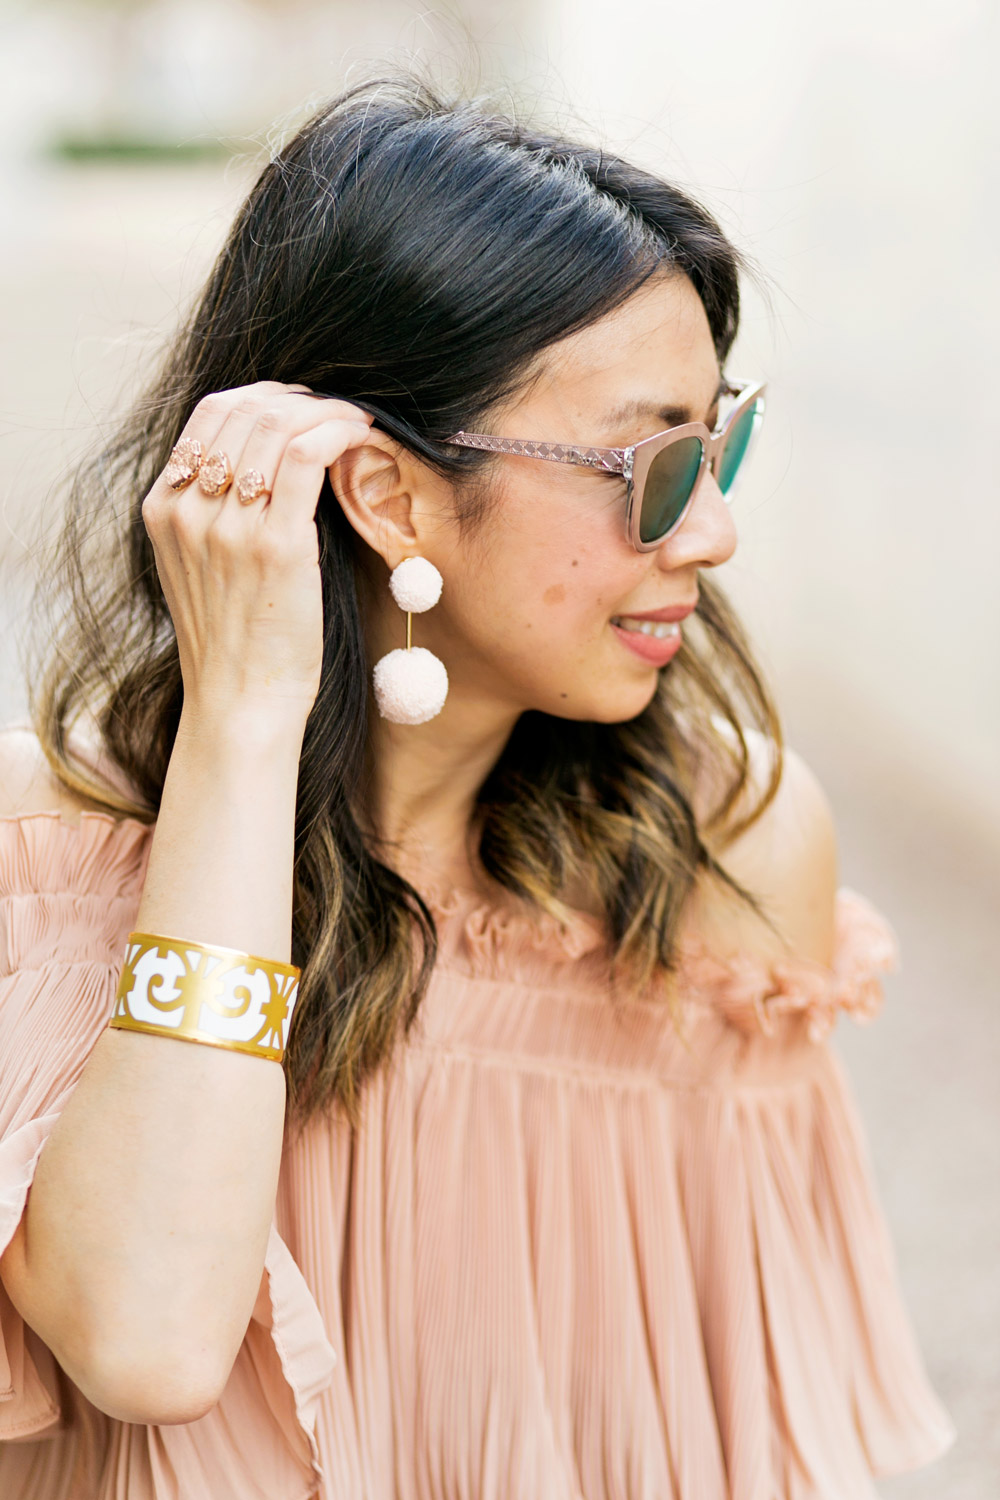 baublebar bahama pink pom pm earrings with endless rose pink pleated off the shoulder top and hermes balcones bangle, dior diorama pink mirrored sunglasses, spring outfit idea